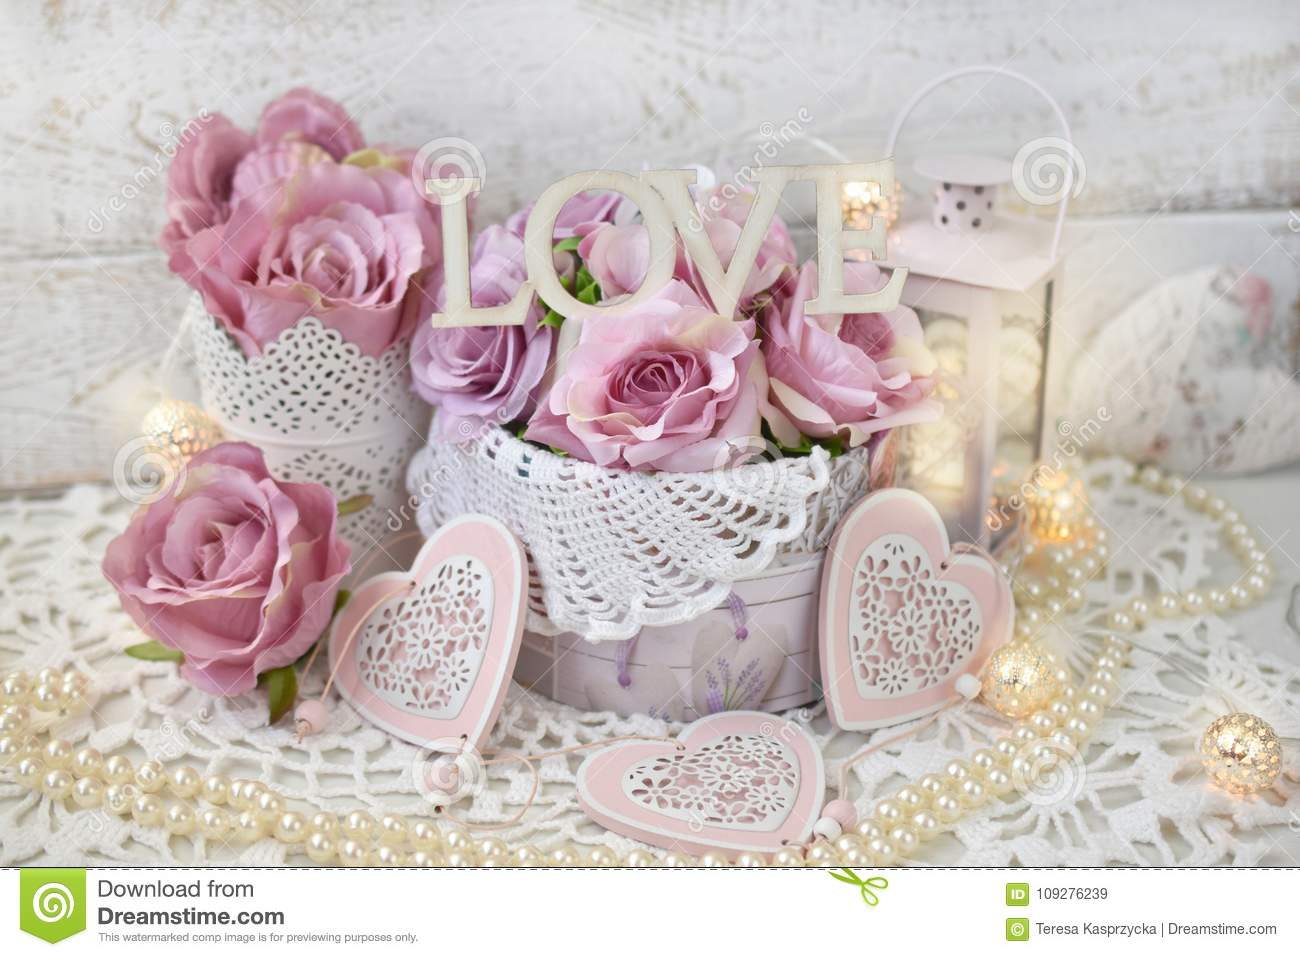 Shabby Chic Colors Style : Romantic love decoration in shabby chic style for wedding or val